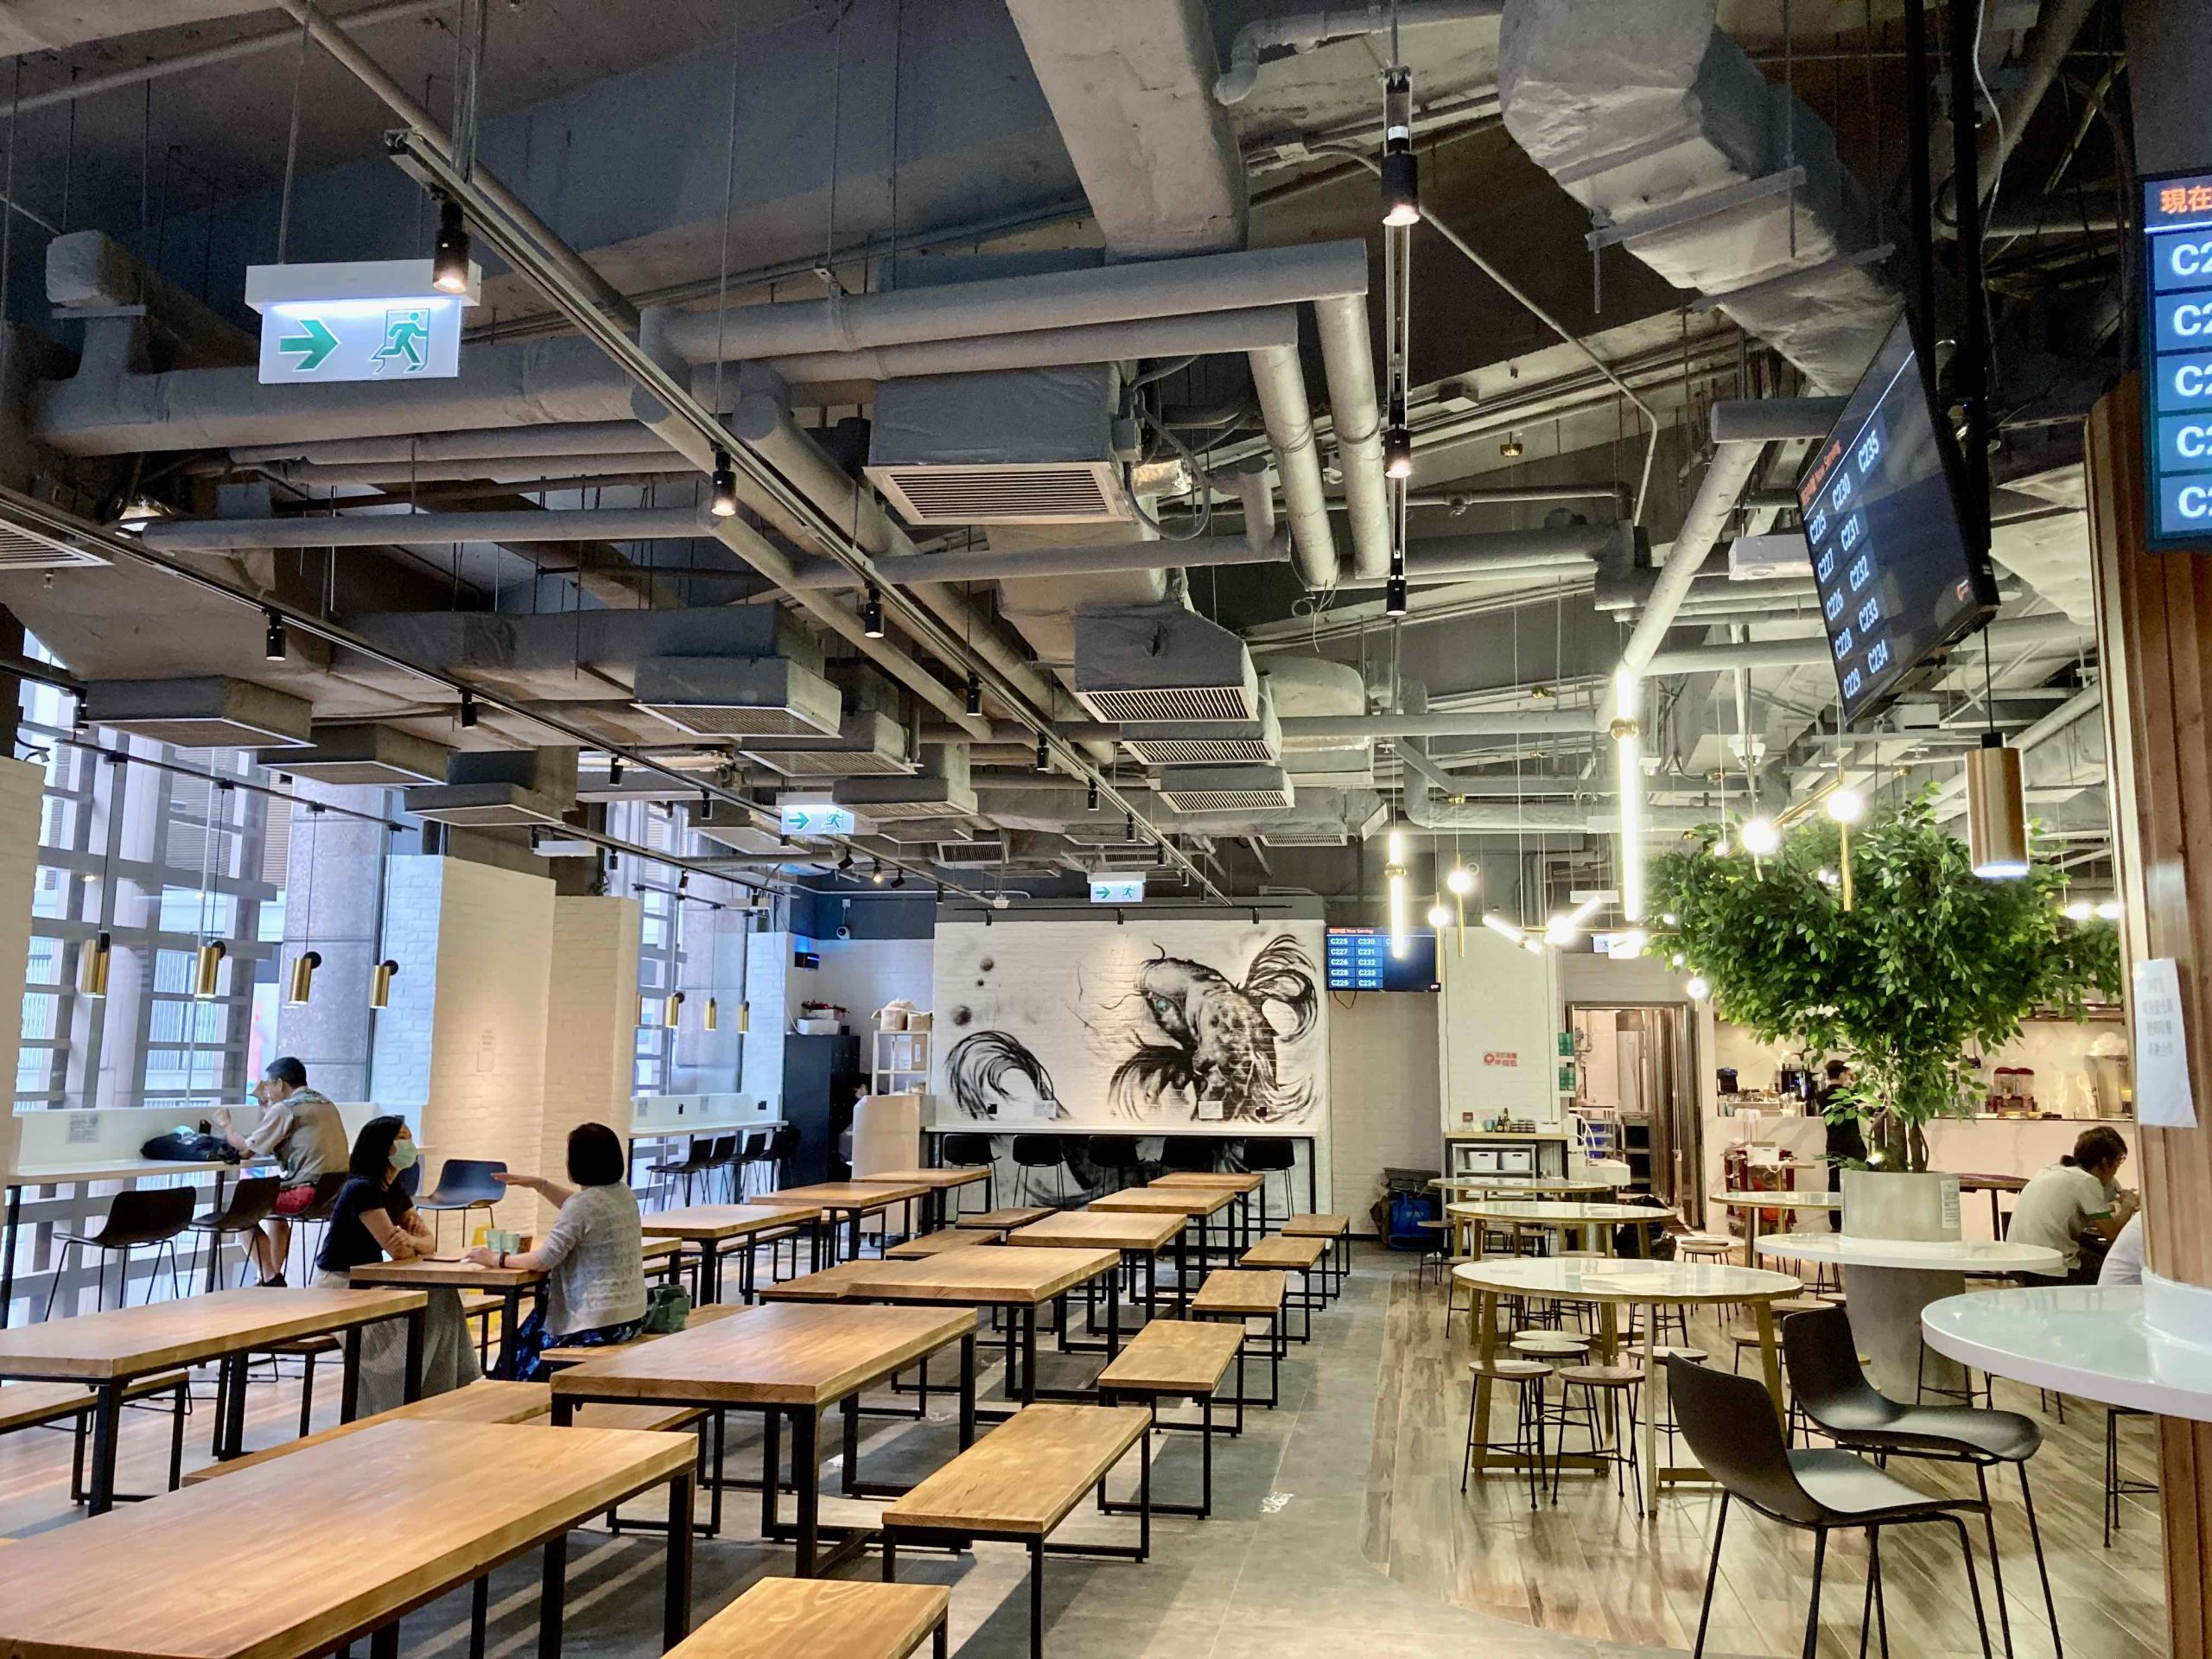 Vast Restaurant with Fitting for Lease in HK Office District